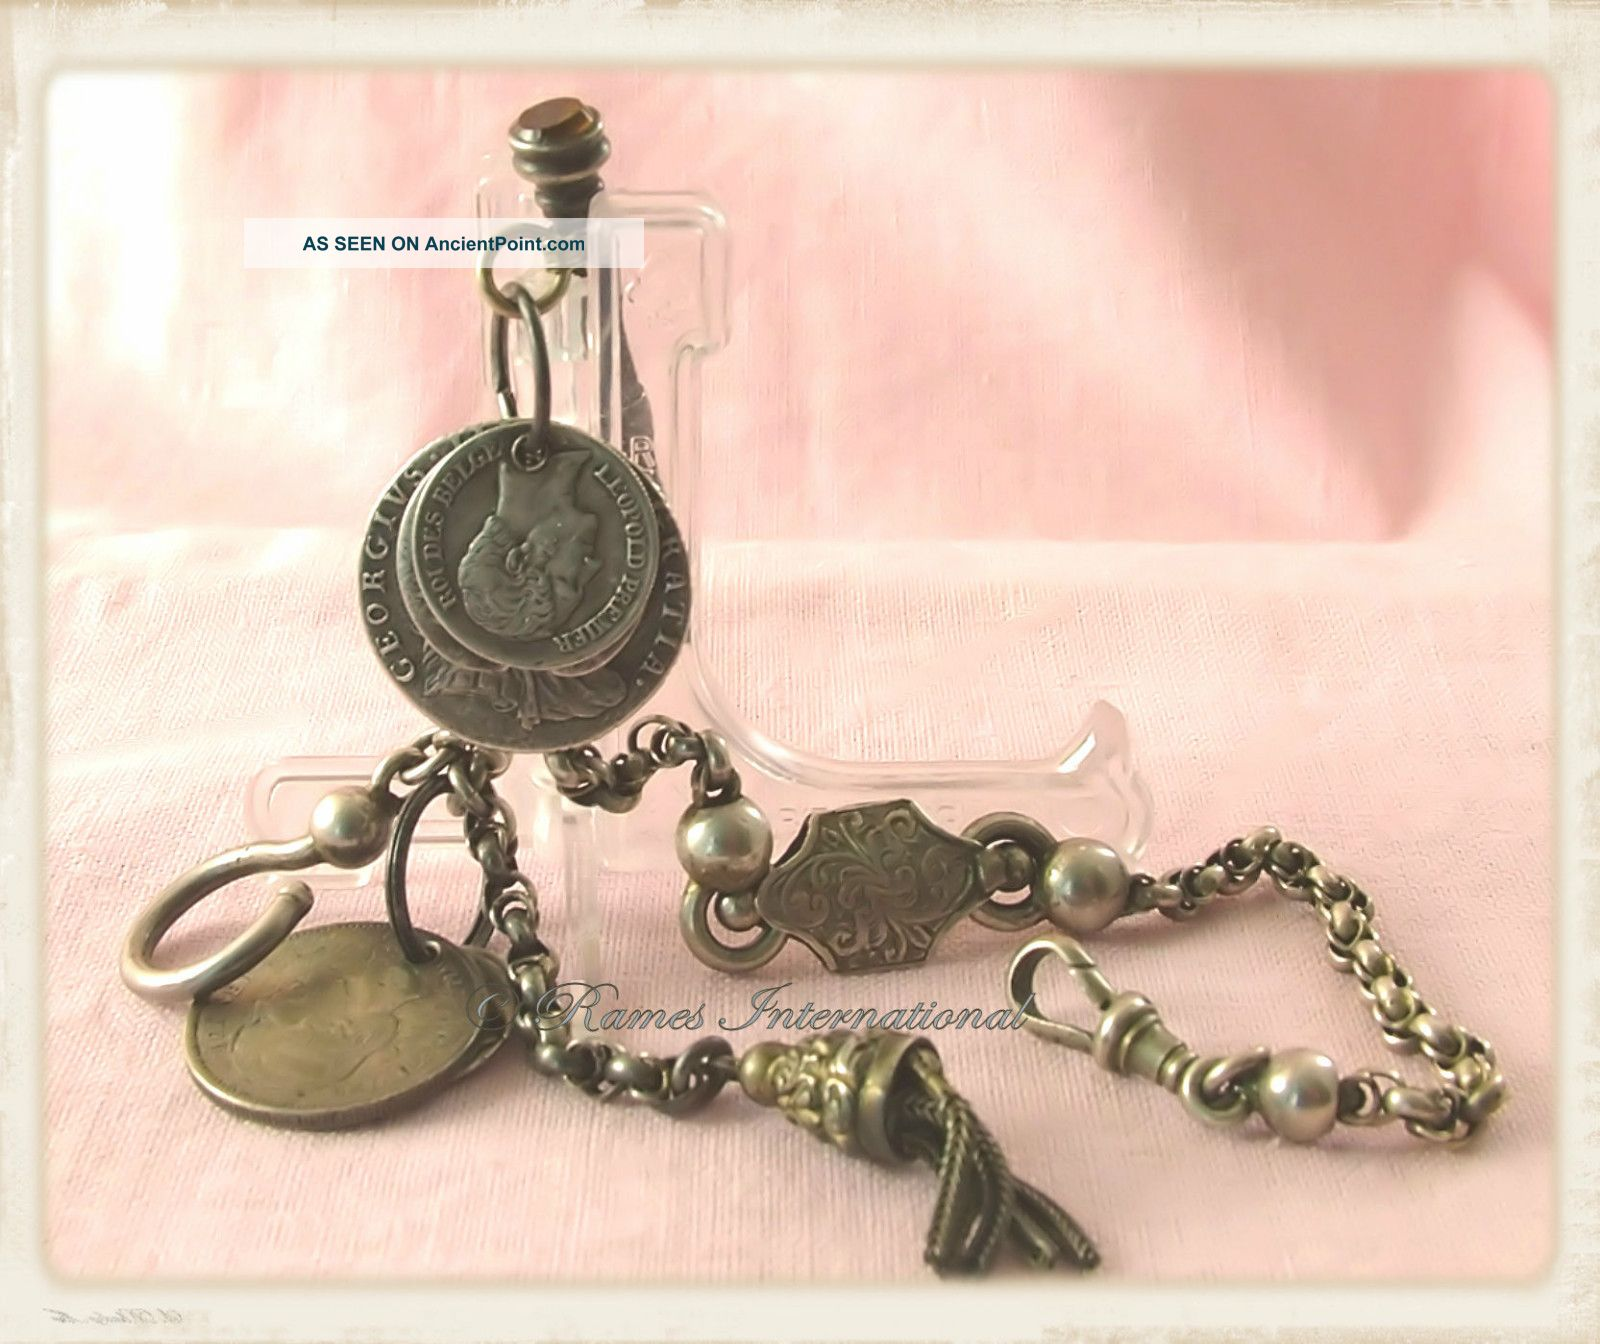 Victorian Silver Albertina Pocket Watch Fob Tassel Coins Chatelaine Pencil C1850 Pocket Watches/ Chains/ Fobs photo